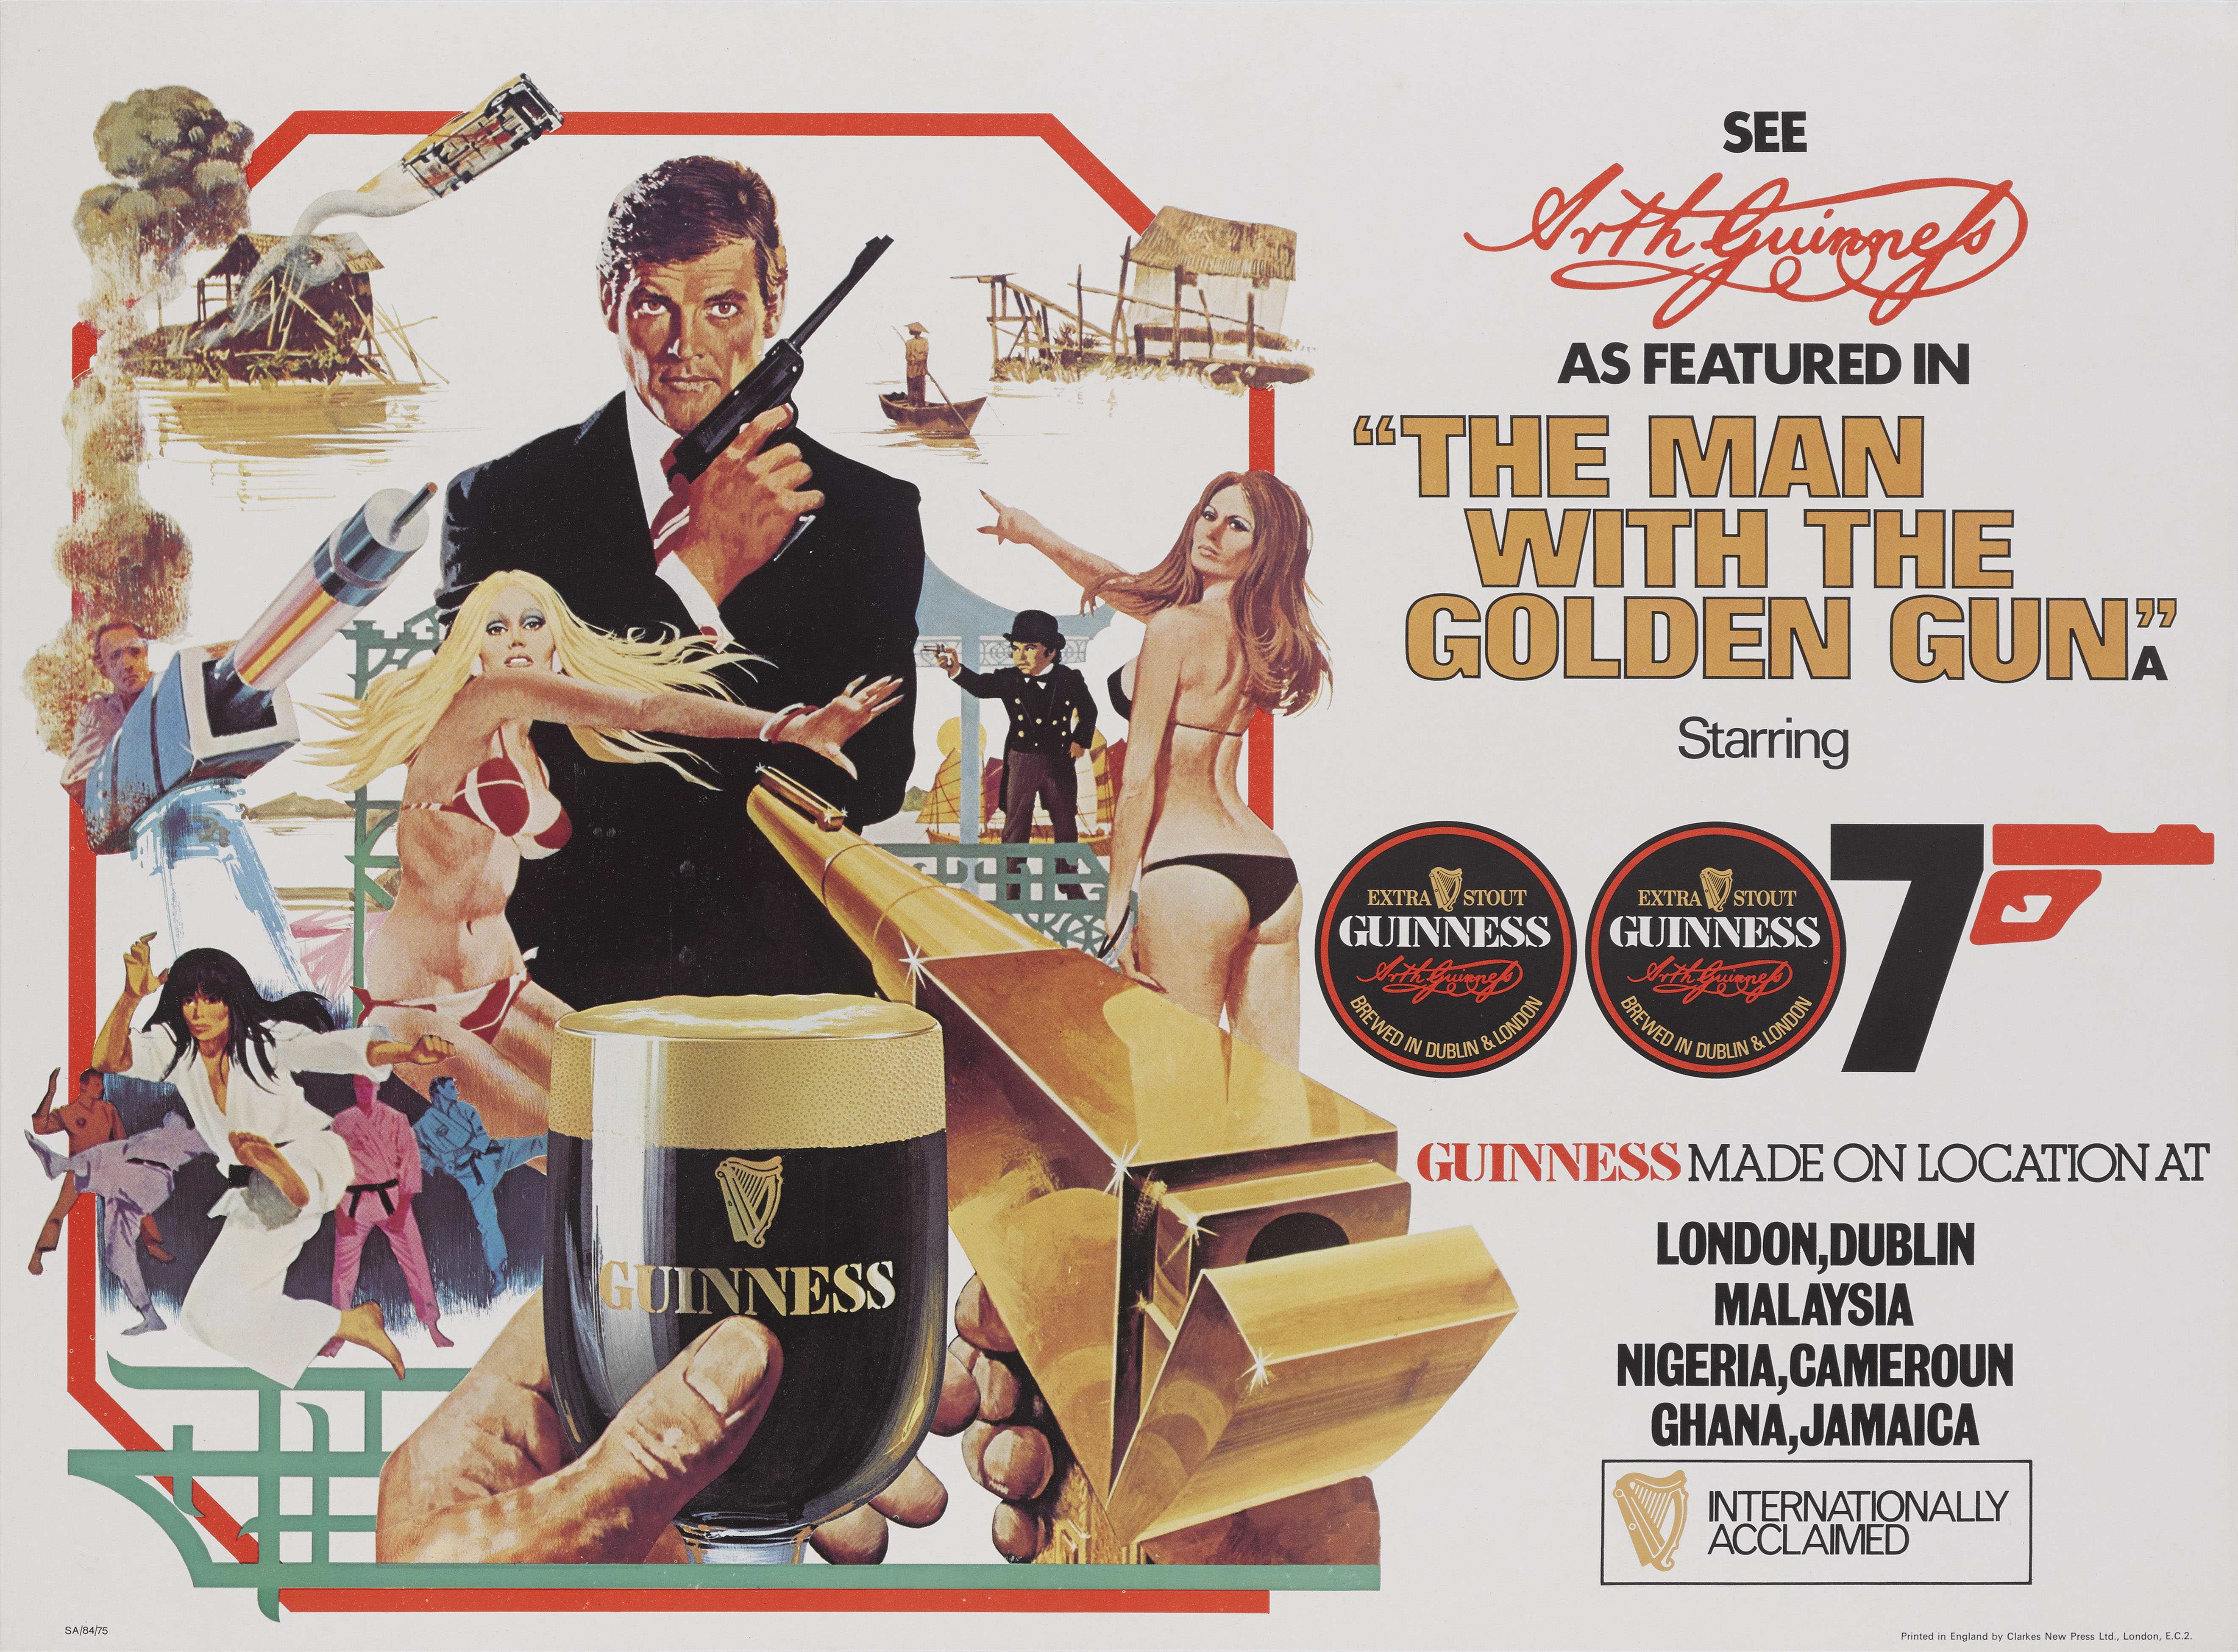 THE MAN WITH THE GOLDEN GUN (1974) POSTER, BRITISH, TIE-IN WITH GUINNESS